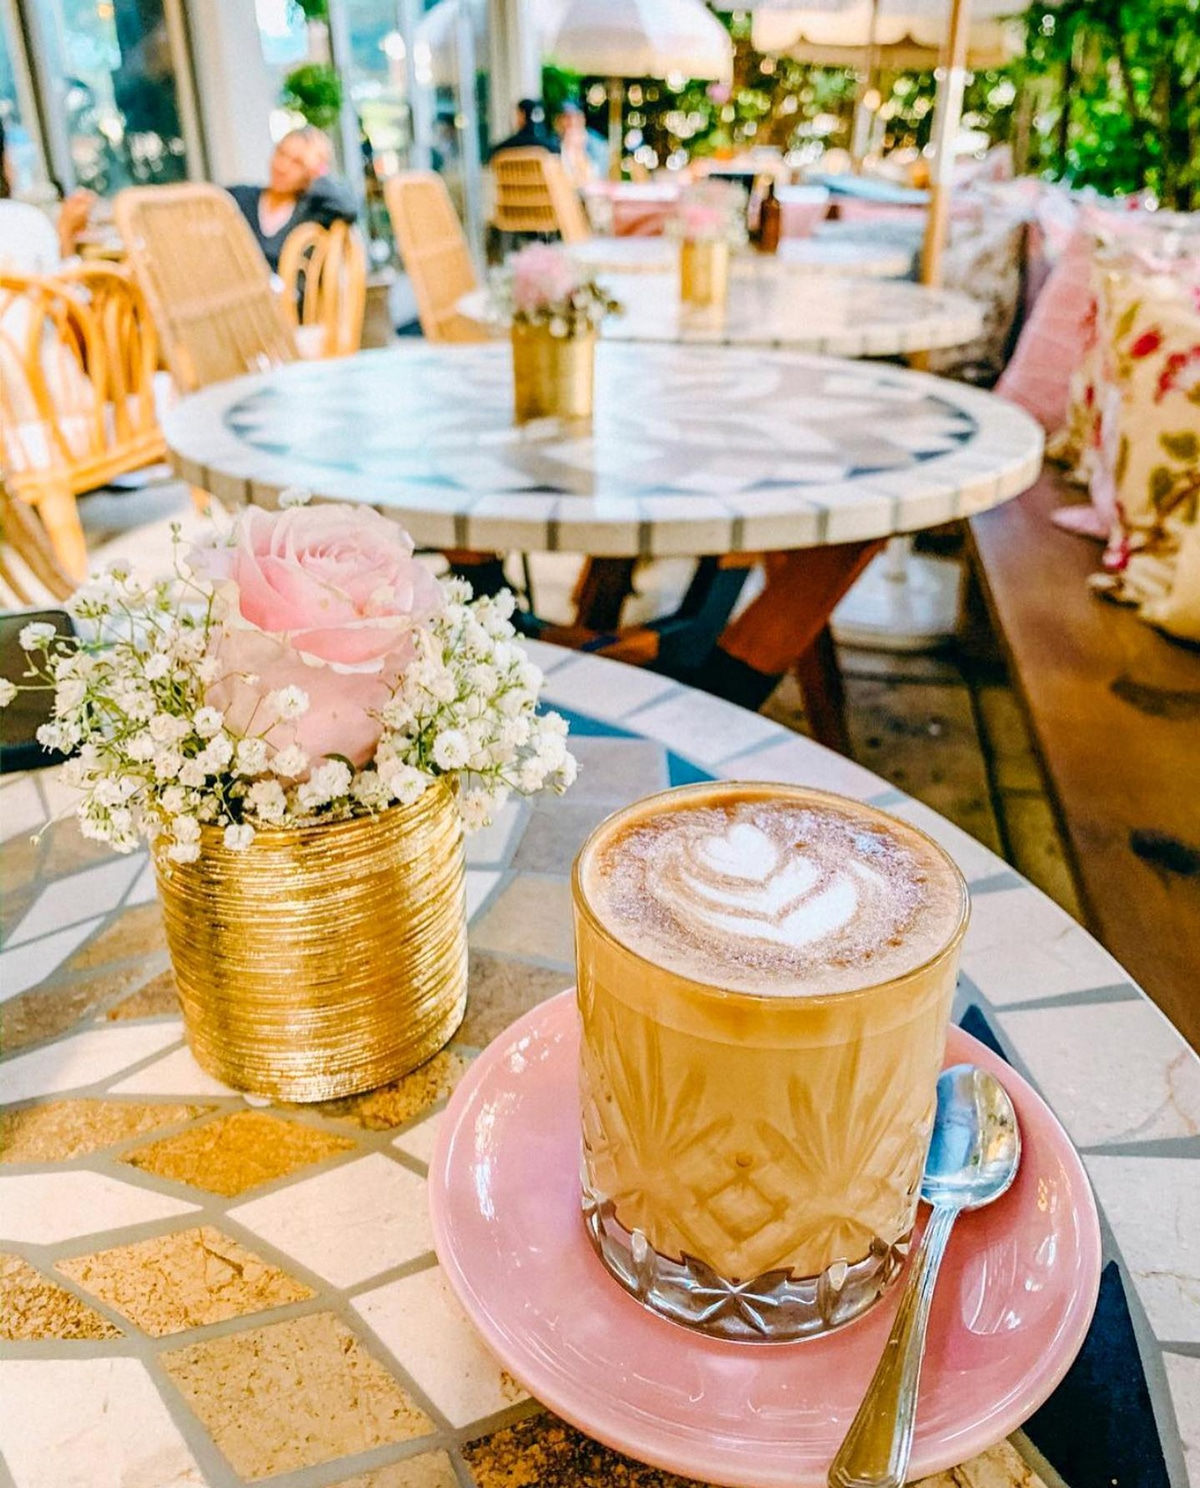 Miami Brunch Hostspot Little Hen in Midtown Miami with Instagrammable location and food latte